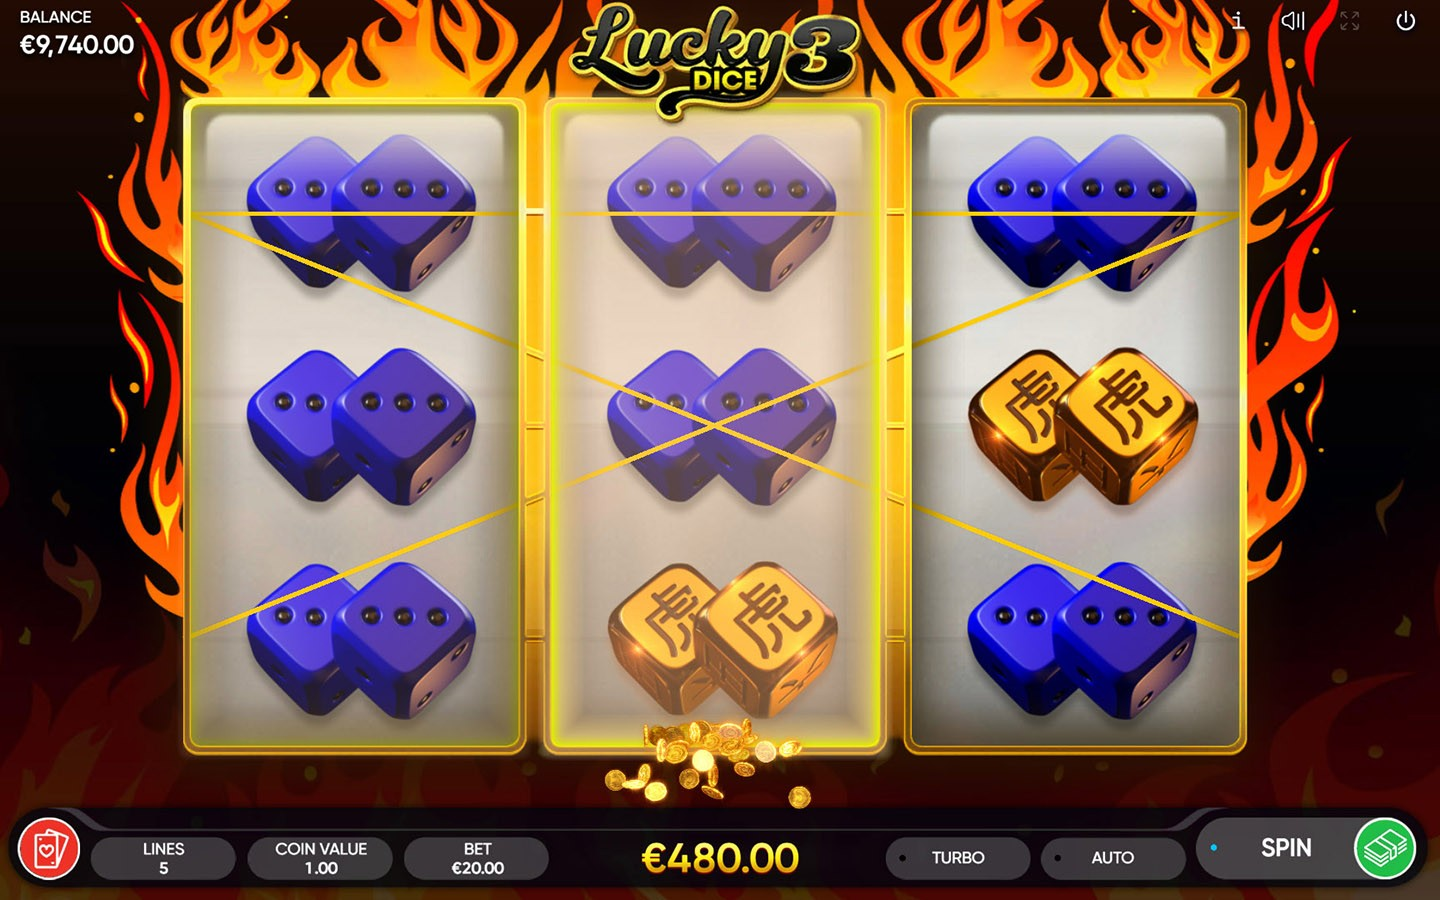 Best Dice Slots Play Lucky Dice 3 Slot For Free